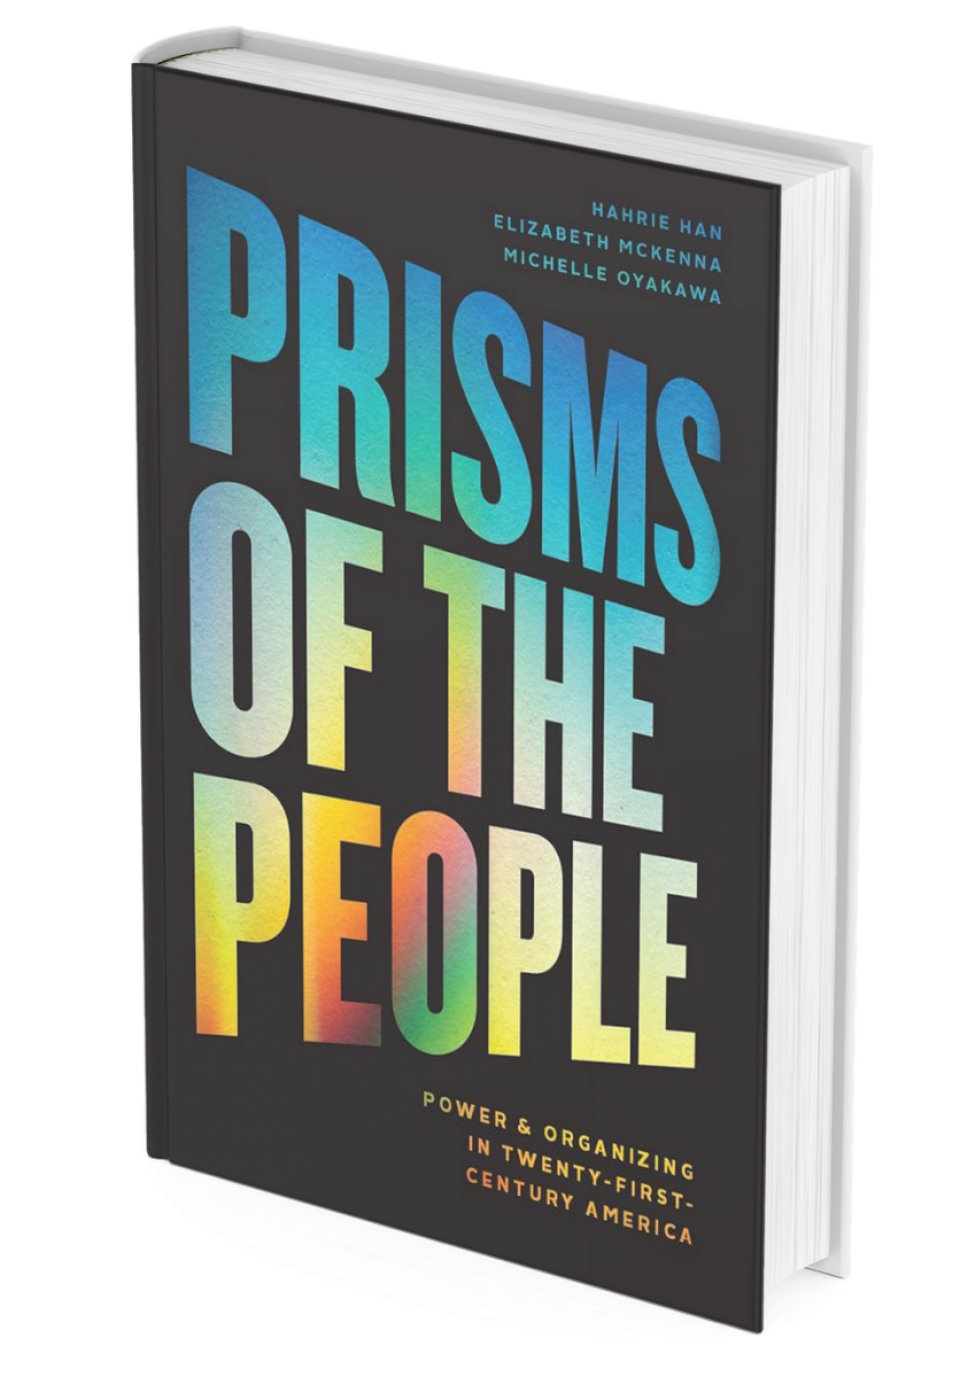 Book cover of Prisms of the People by Hahrie Han